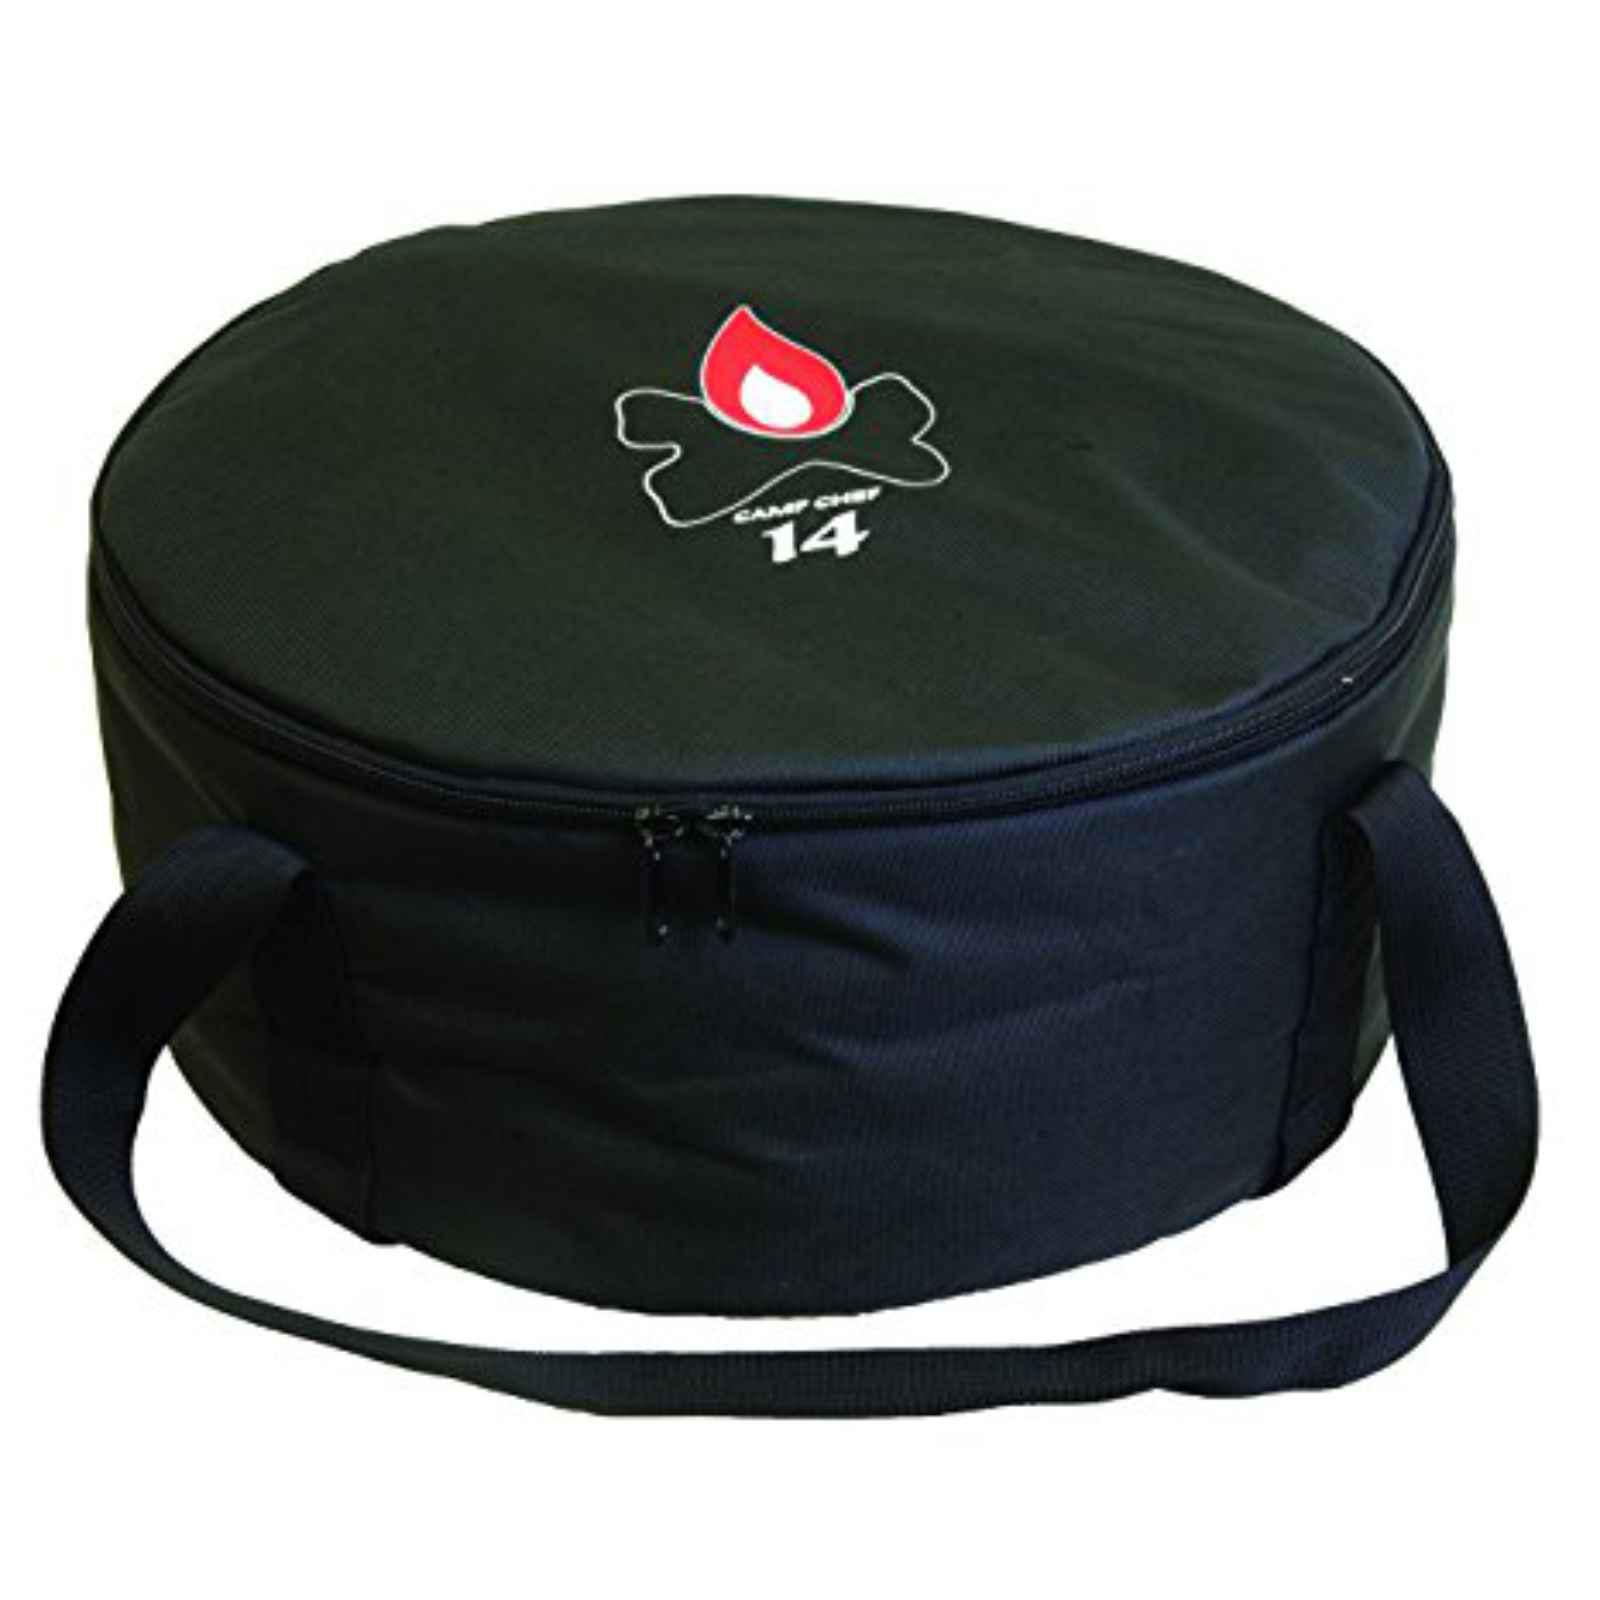 "Camp Chef 12"" Padded Dutch Oven Carry Bag with Ties Down Straps by Camp Chef"